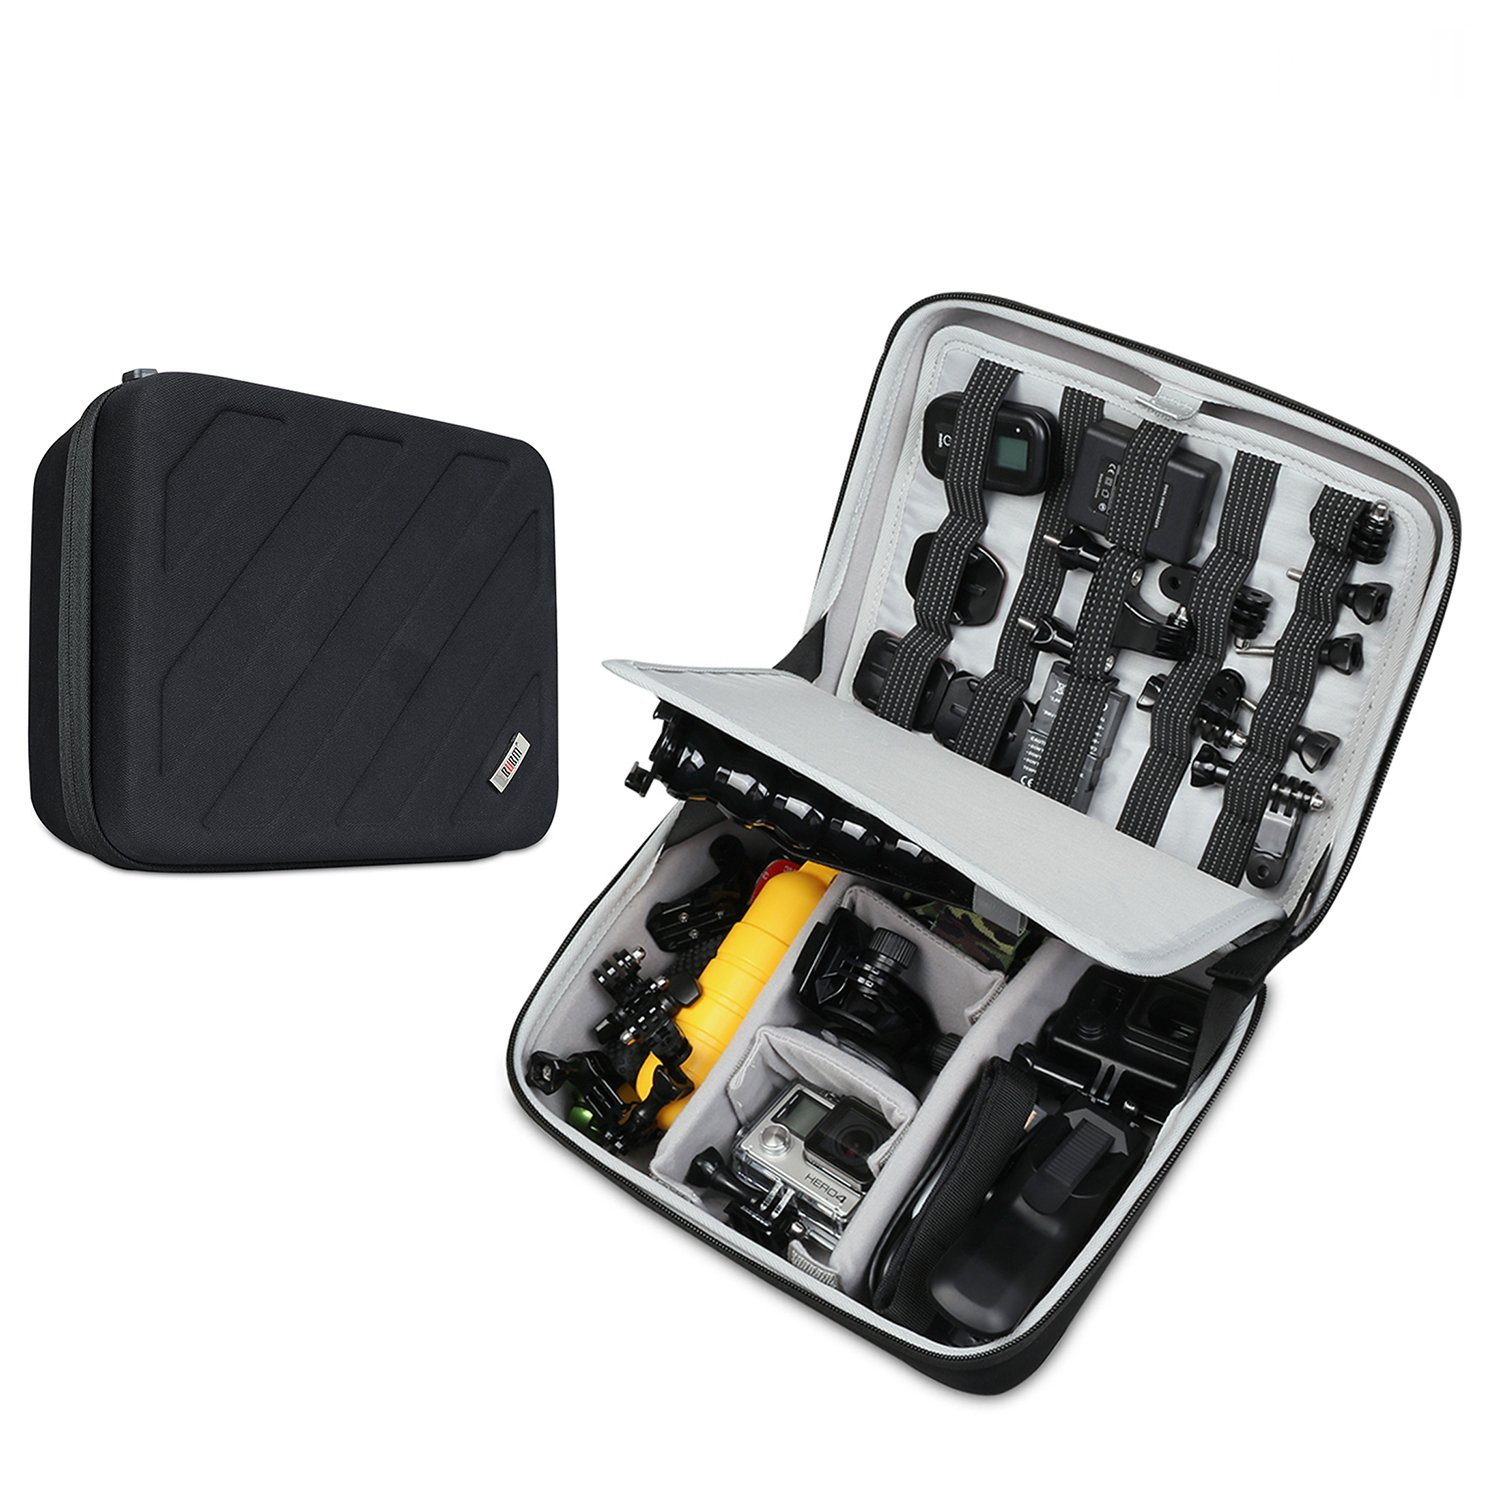 Carrying Case for GoPro Hero 6/5/4/3+/3/2/1,Electronic Organizer,Hard Shell Travel Storage Bag for Makeup,Cables,Flash Hard Drive, Power Bank and More